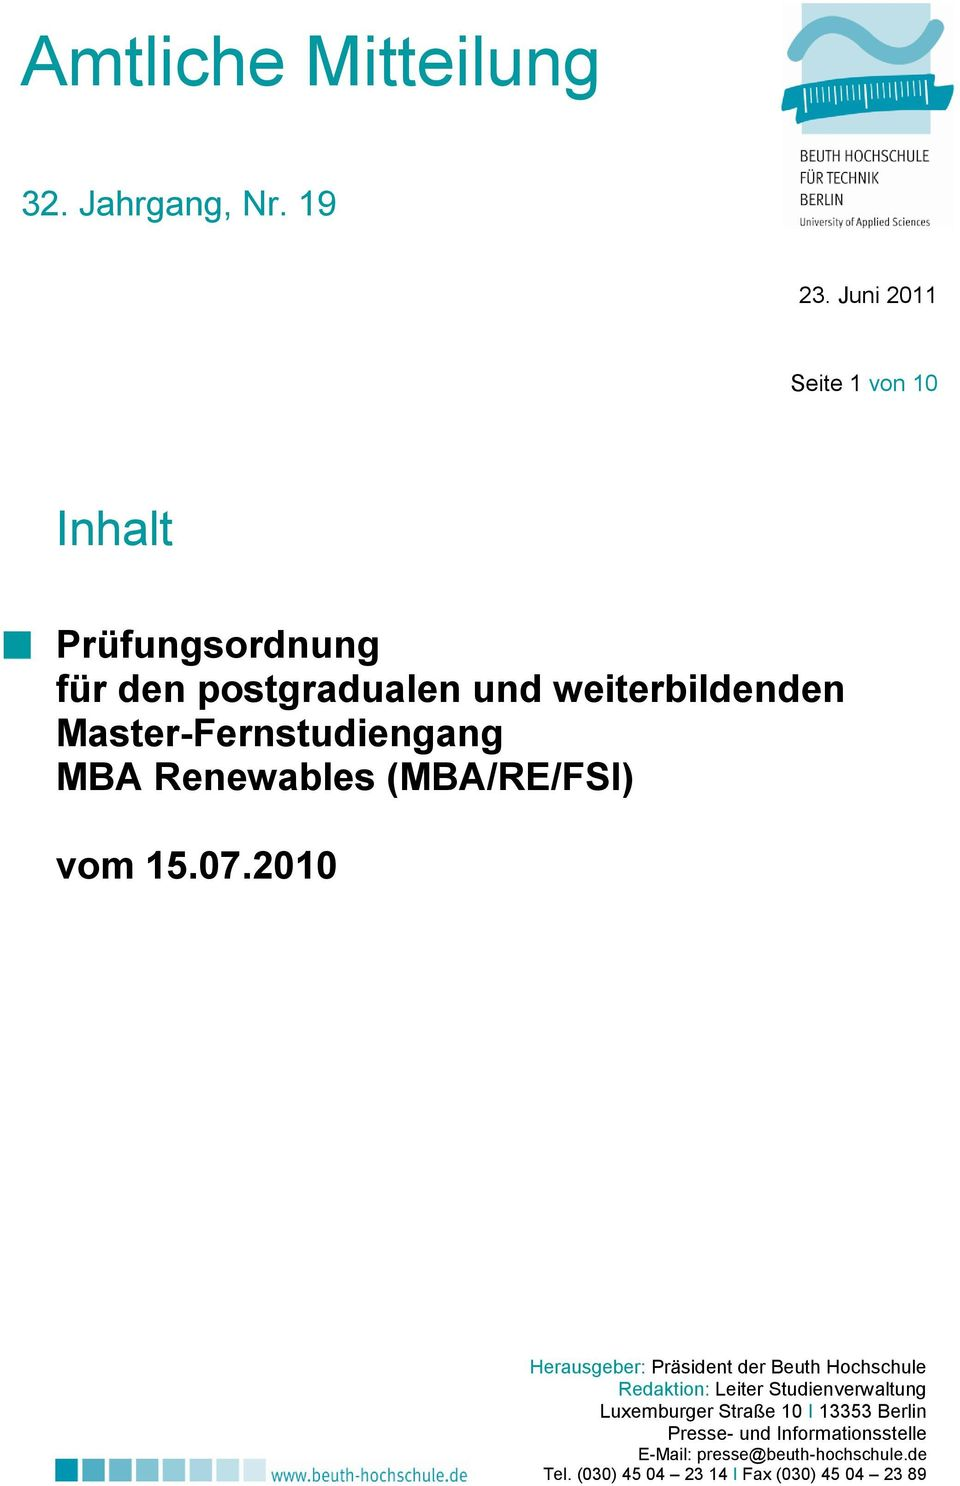 Master-Fernstudiengang MBA Renewables (MBA/RE/FSI) vom 15.07.